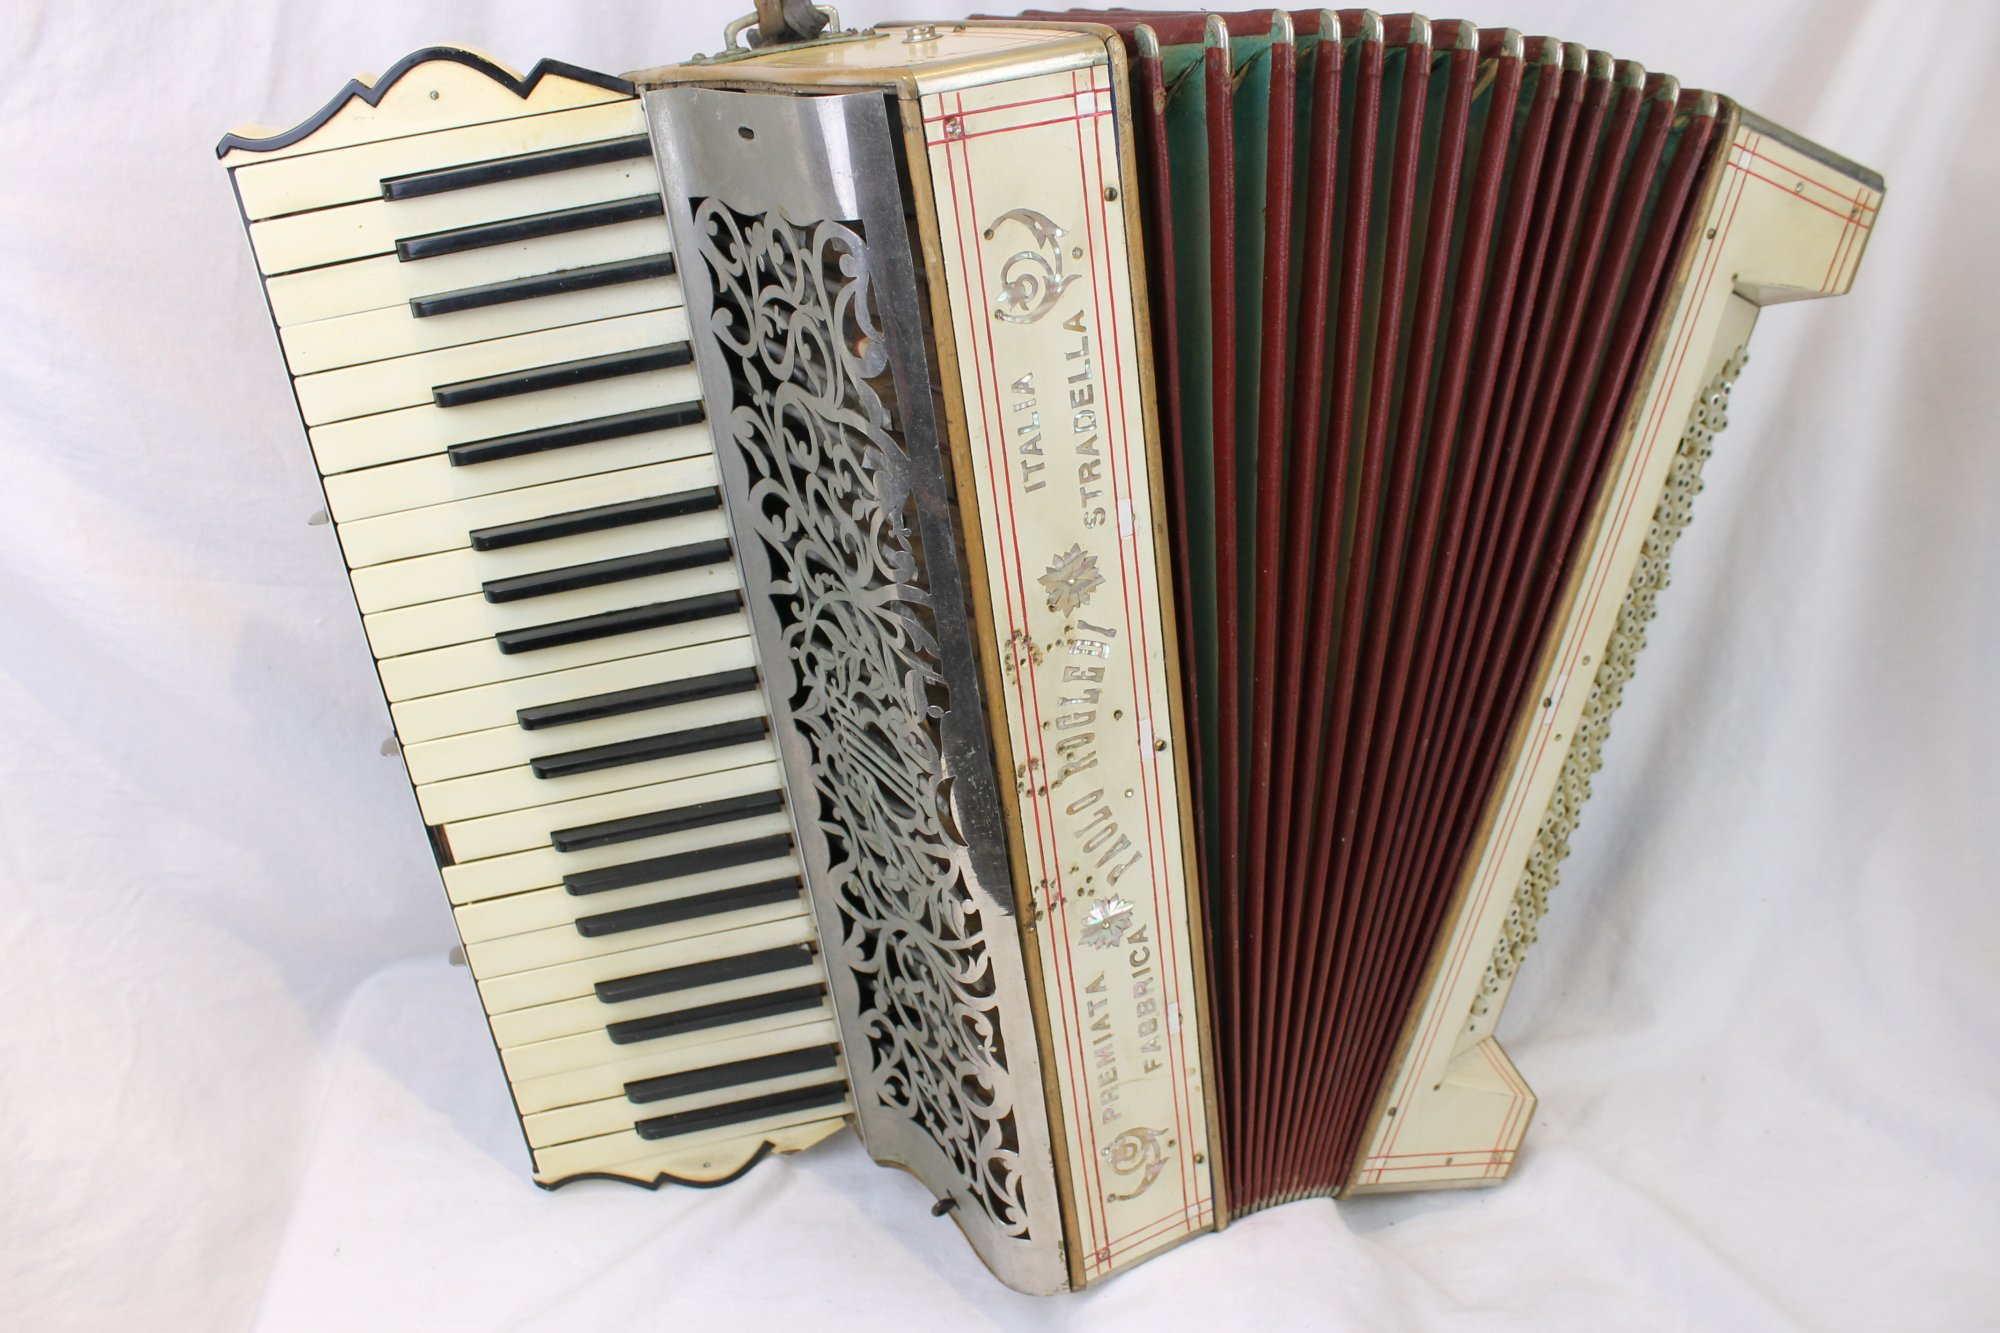 3608 - Cream Paolo Rogledi Piano Accordion LMM 41 120 - For Parts or Repair